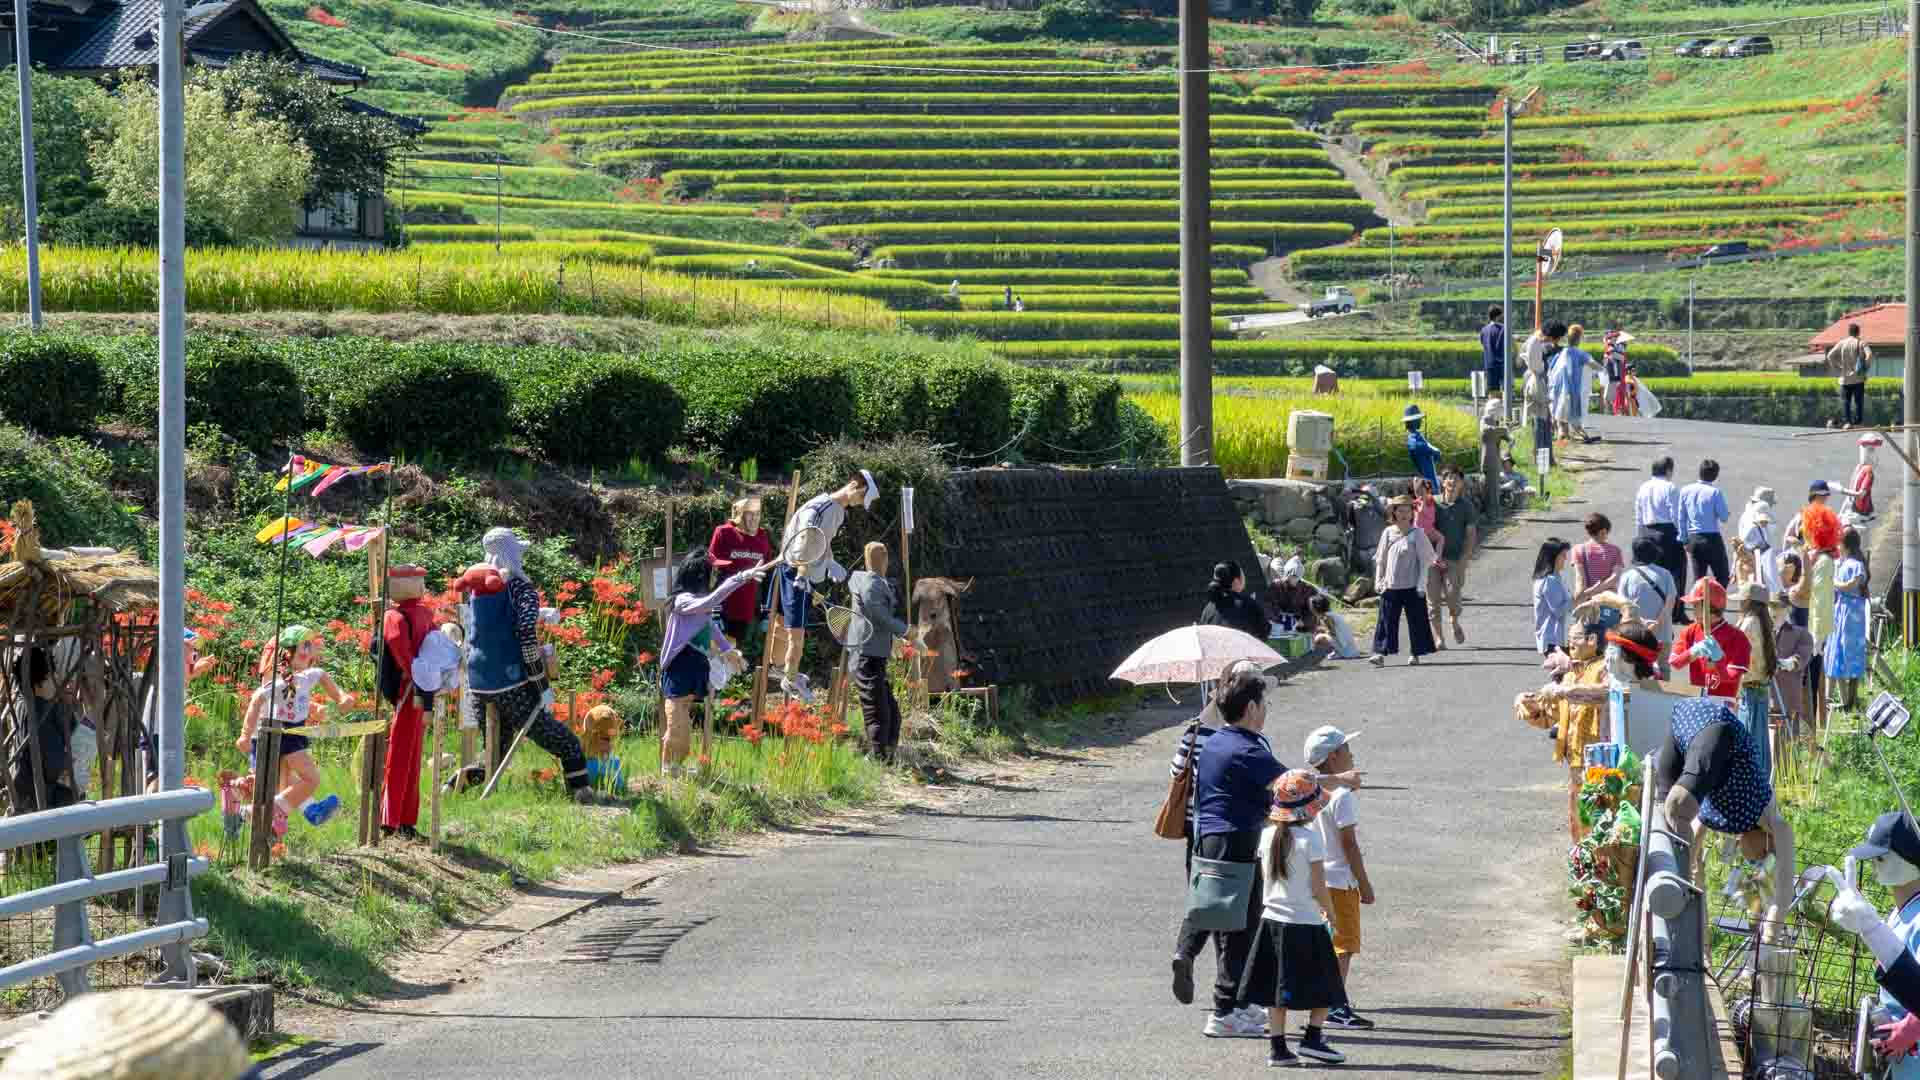 Onigitanada Rice Terrace Festival